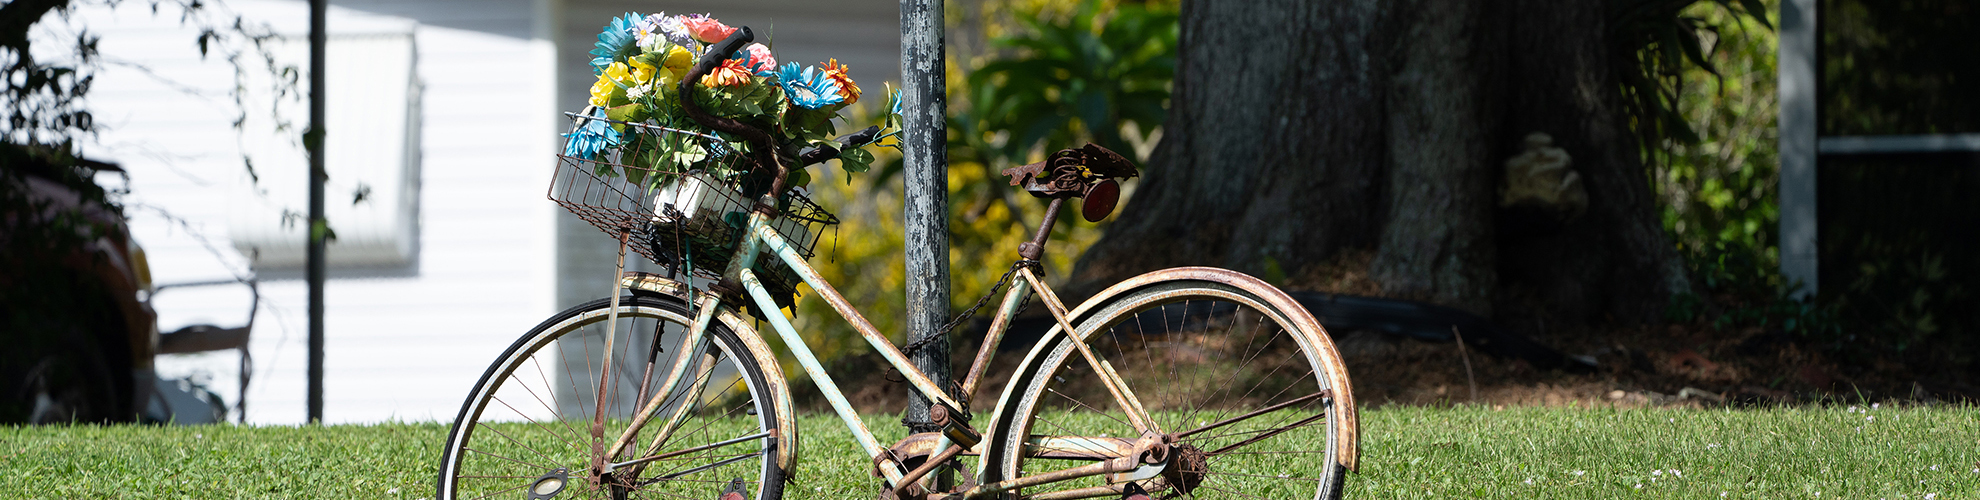 Photo of old bicylce with flowers in basket against a pole